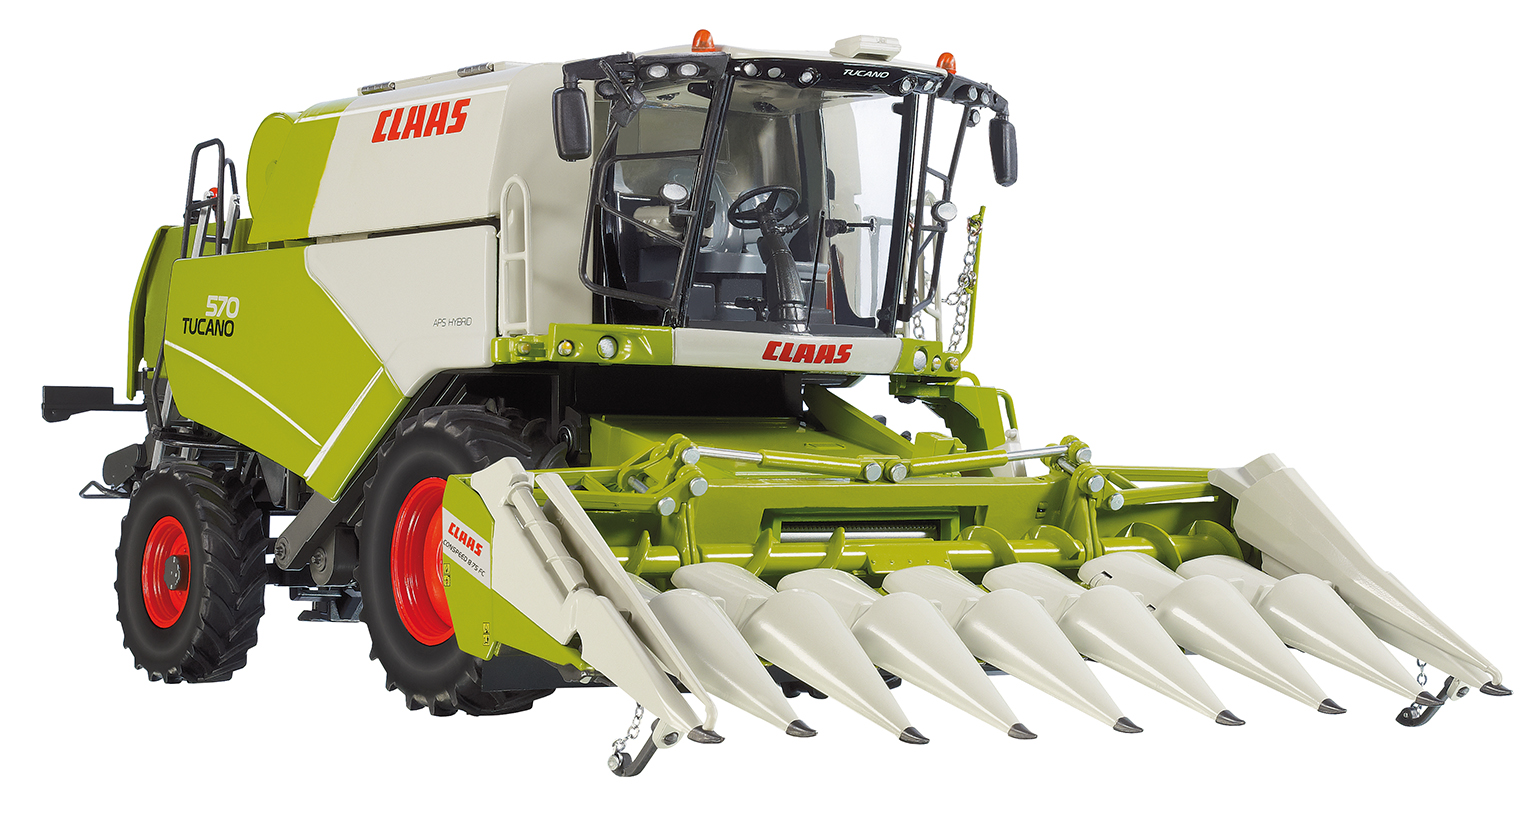 Wiking Claas Tucano 570 Conspeed 1:32